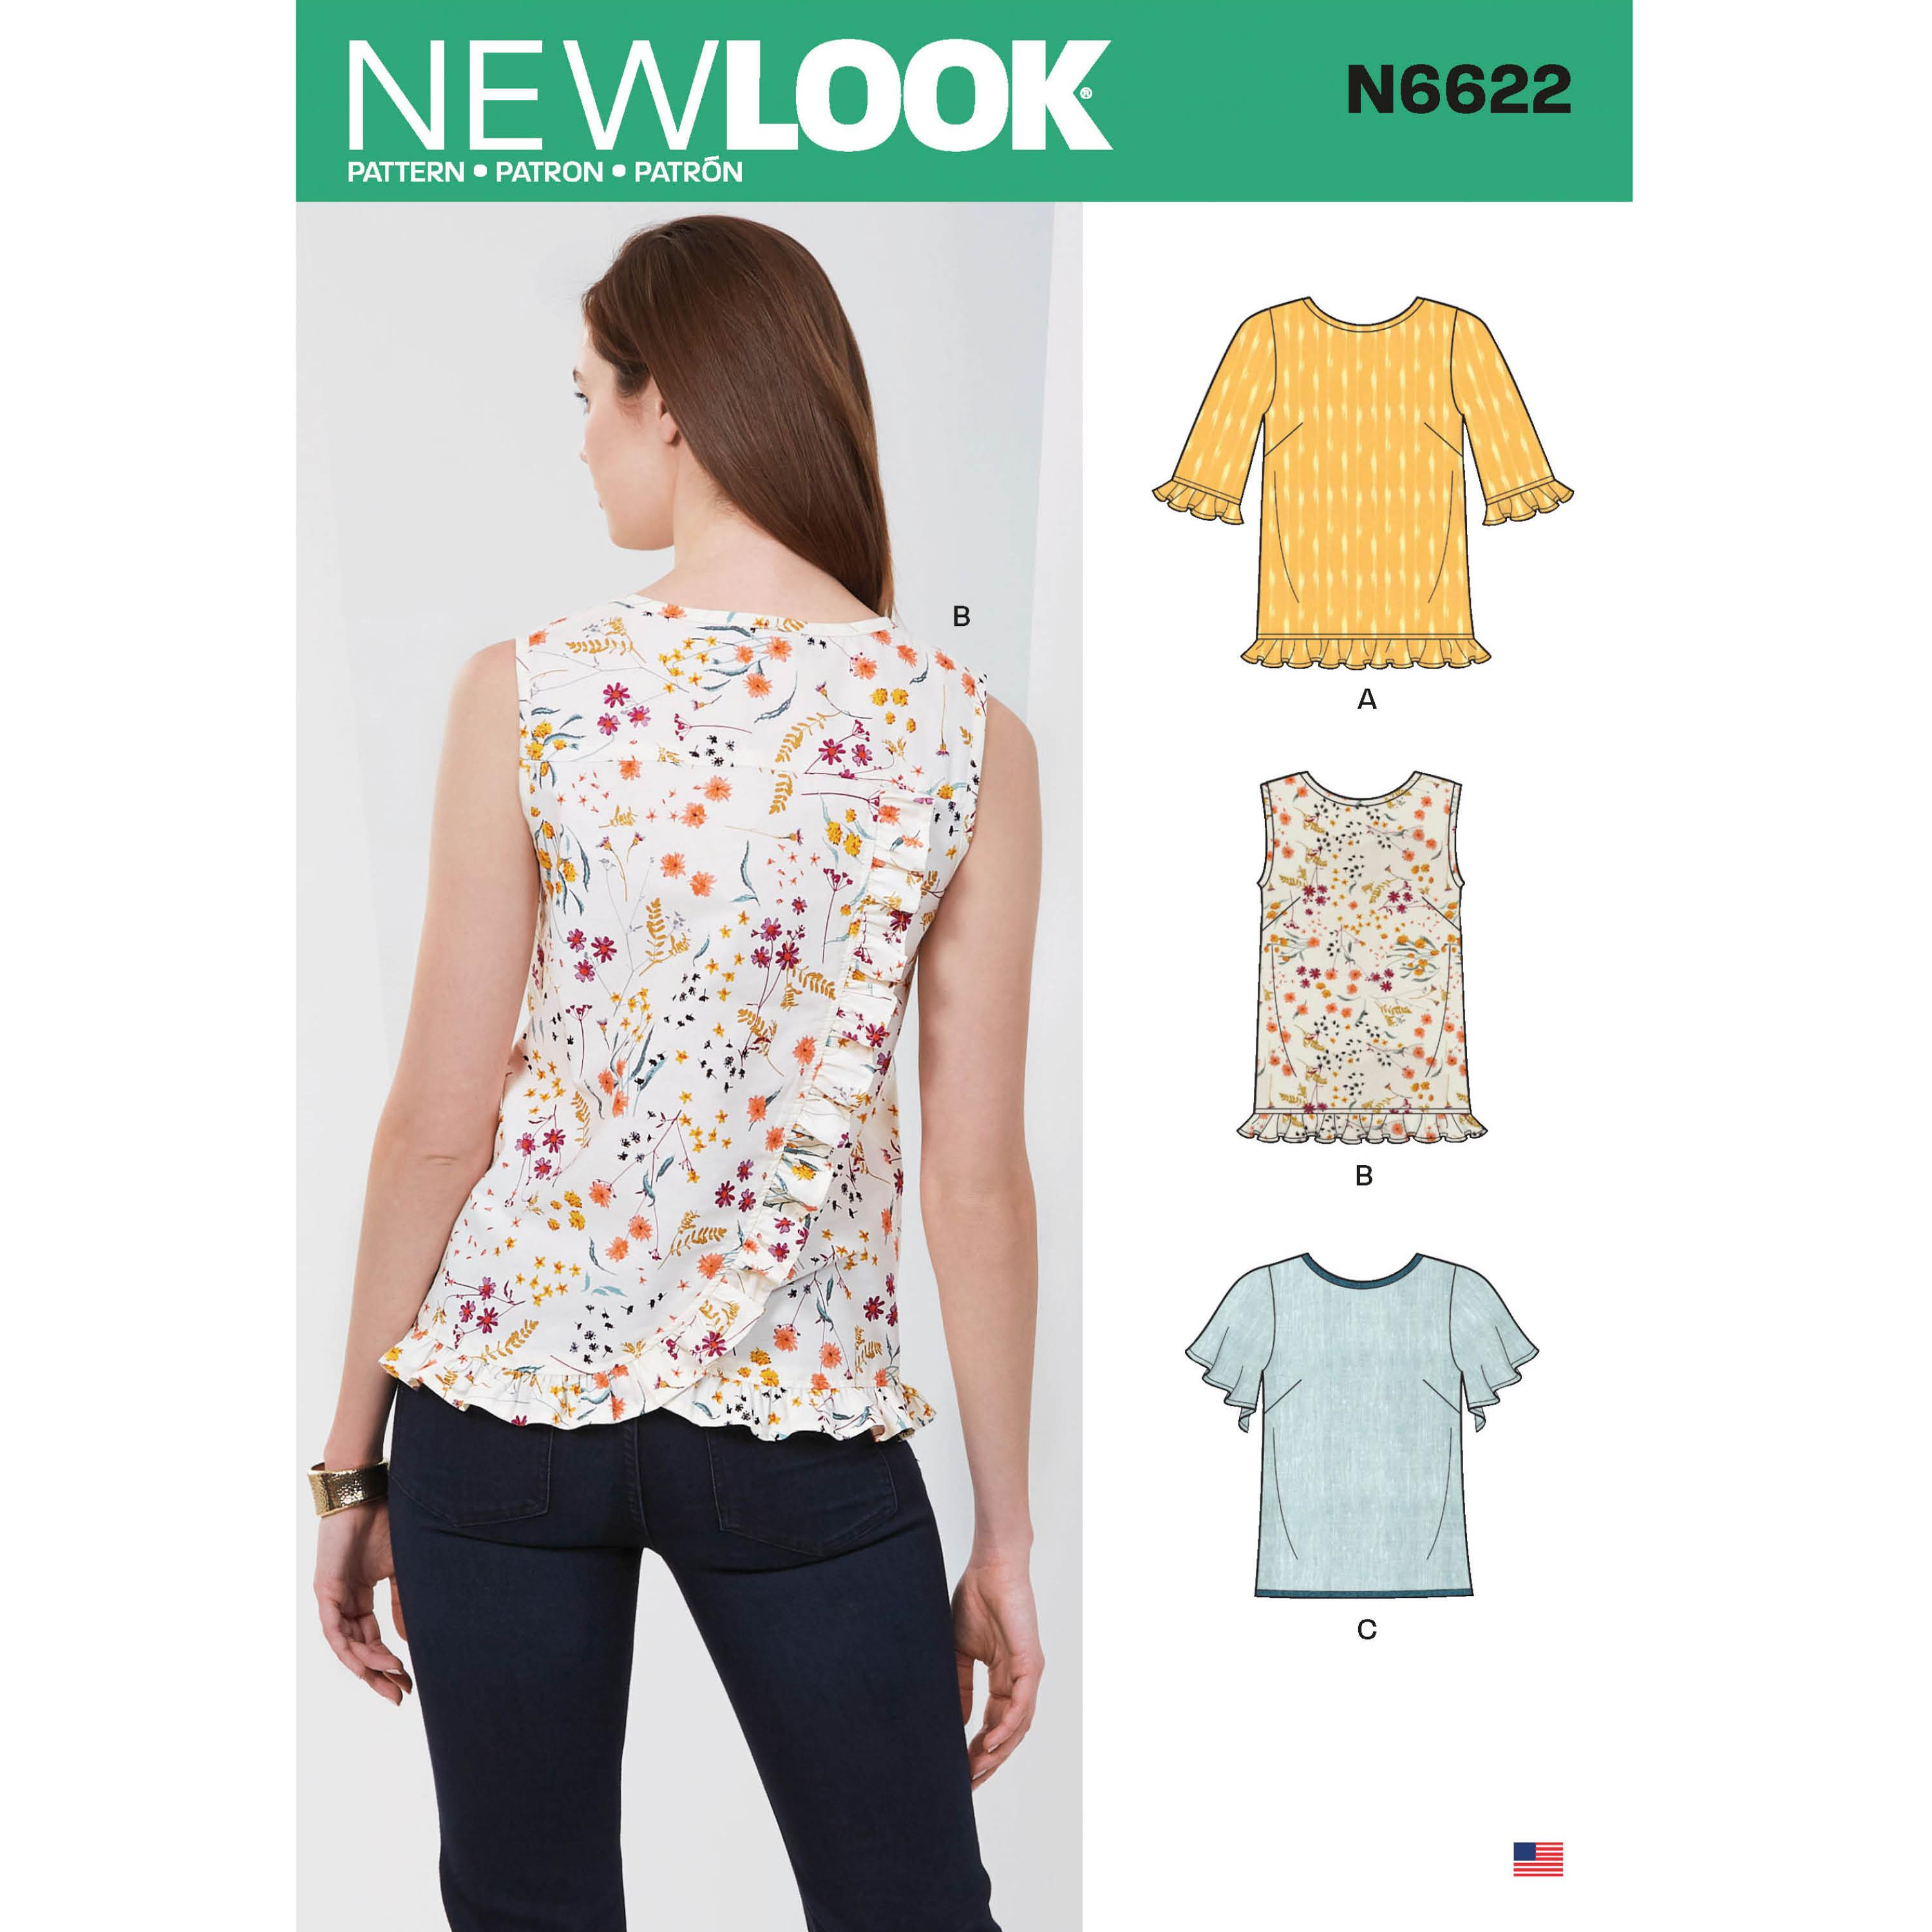 NewLook Sewing Pattern N6622 Misses' Tops